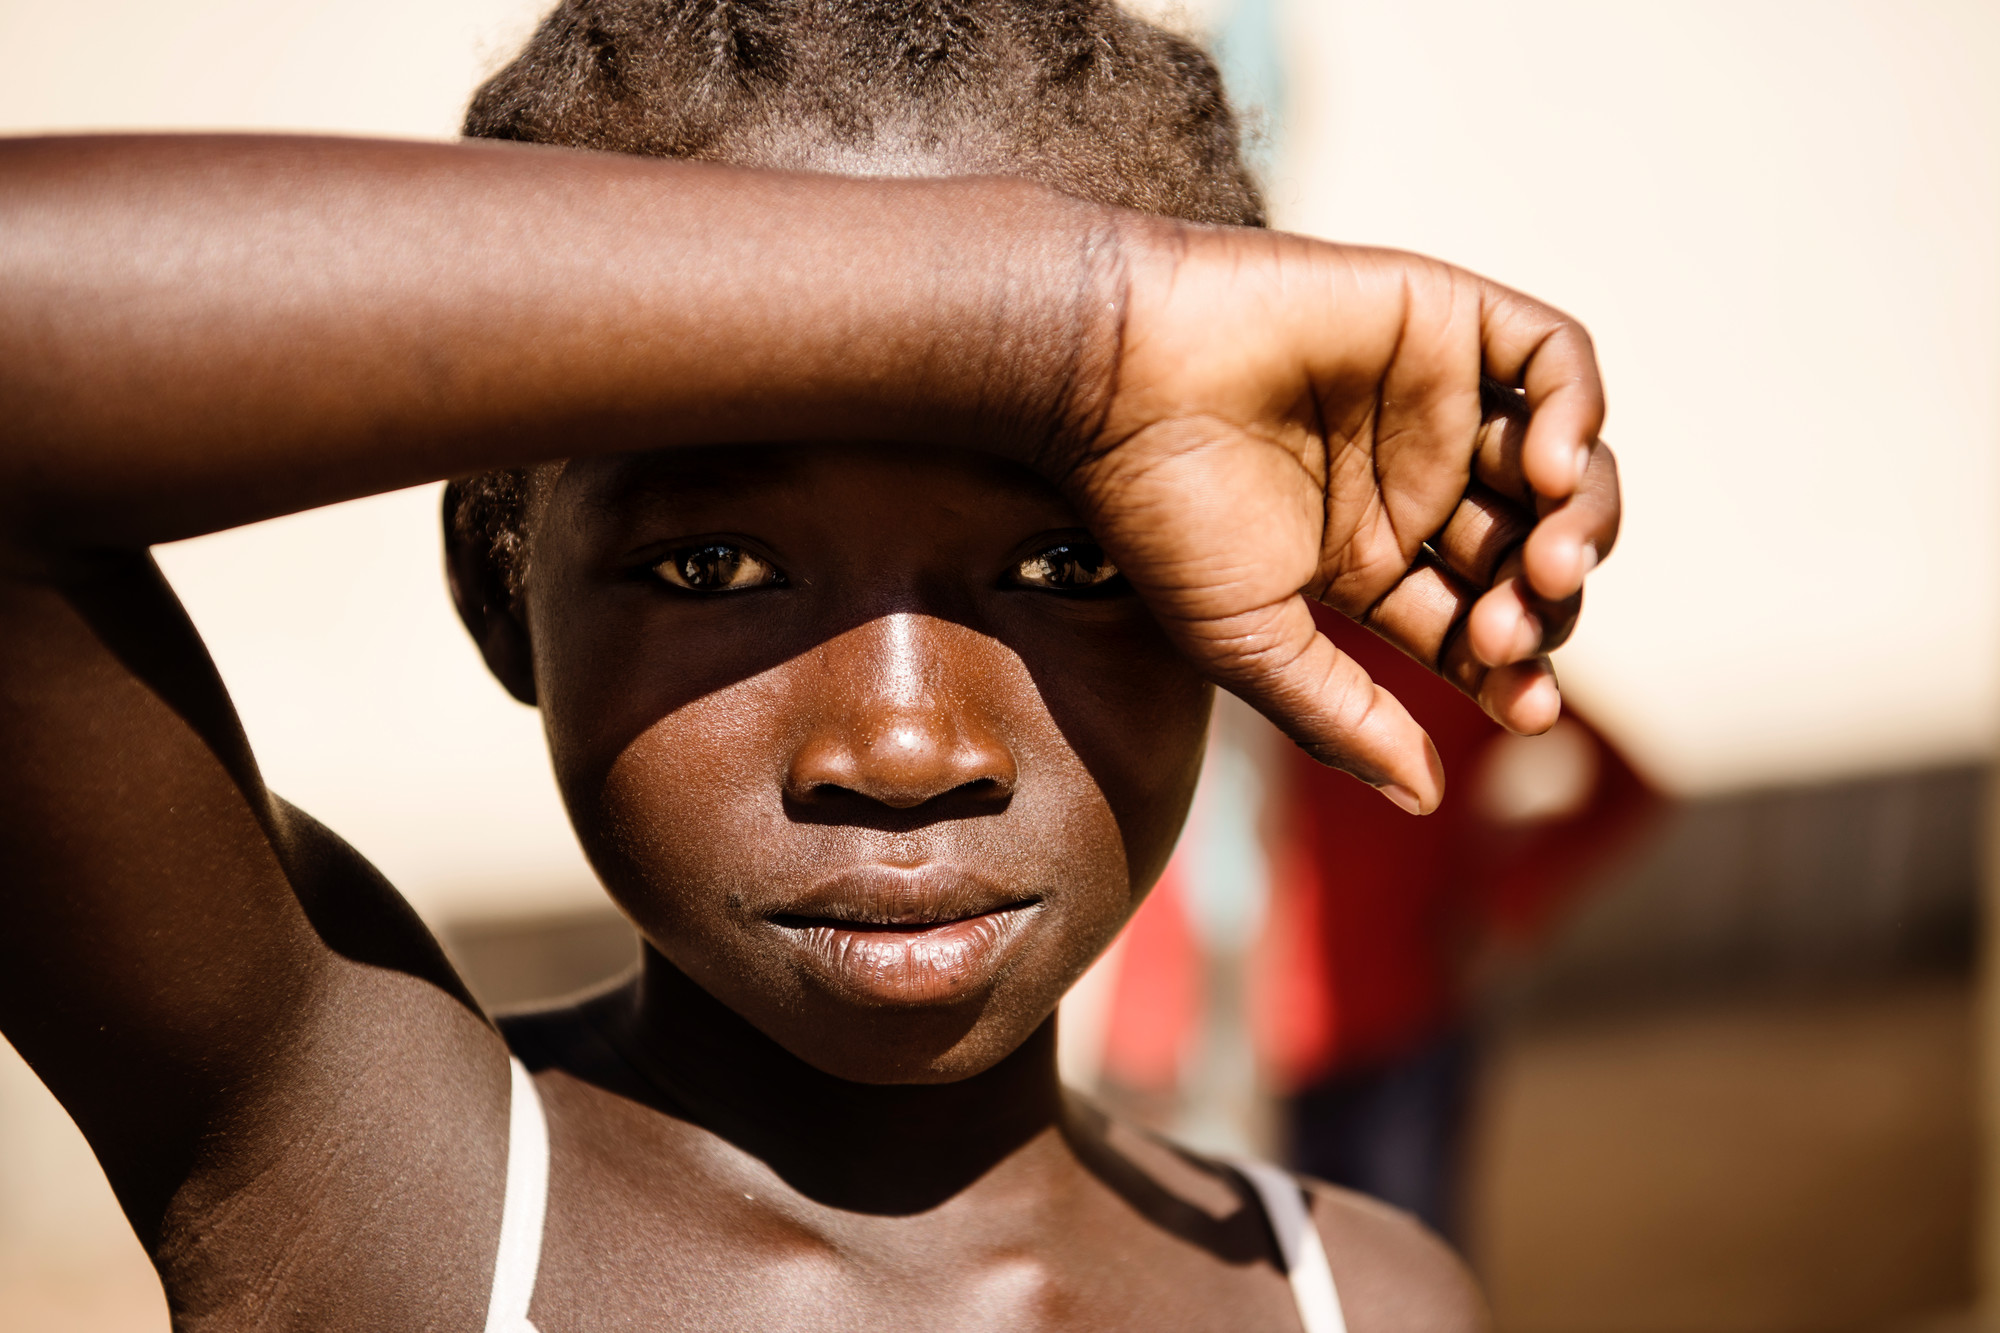 A girl shields her eyes from the sun with her arm over her brow.